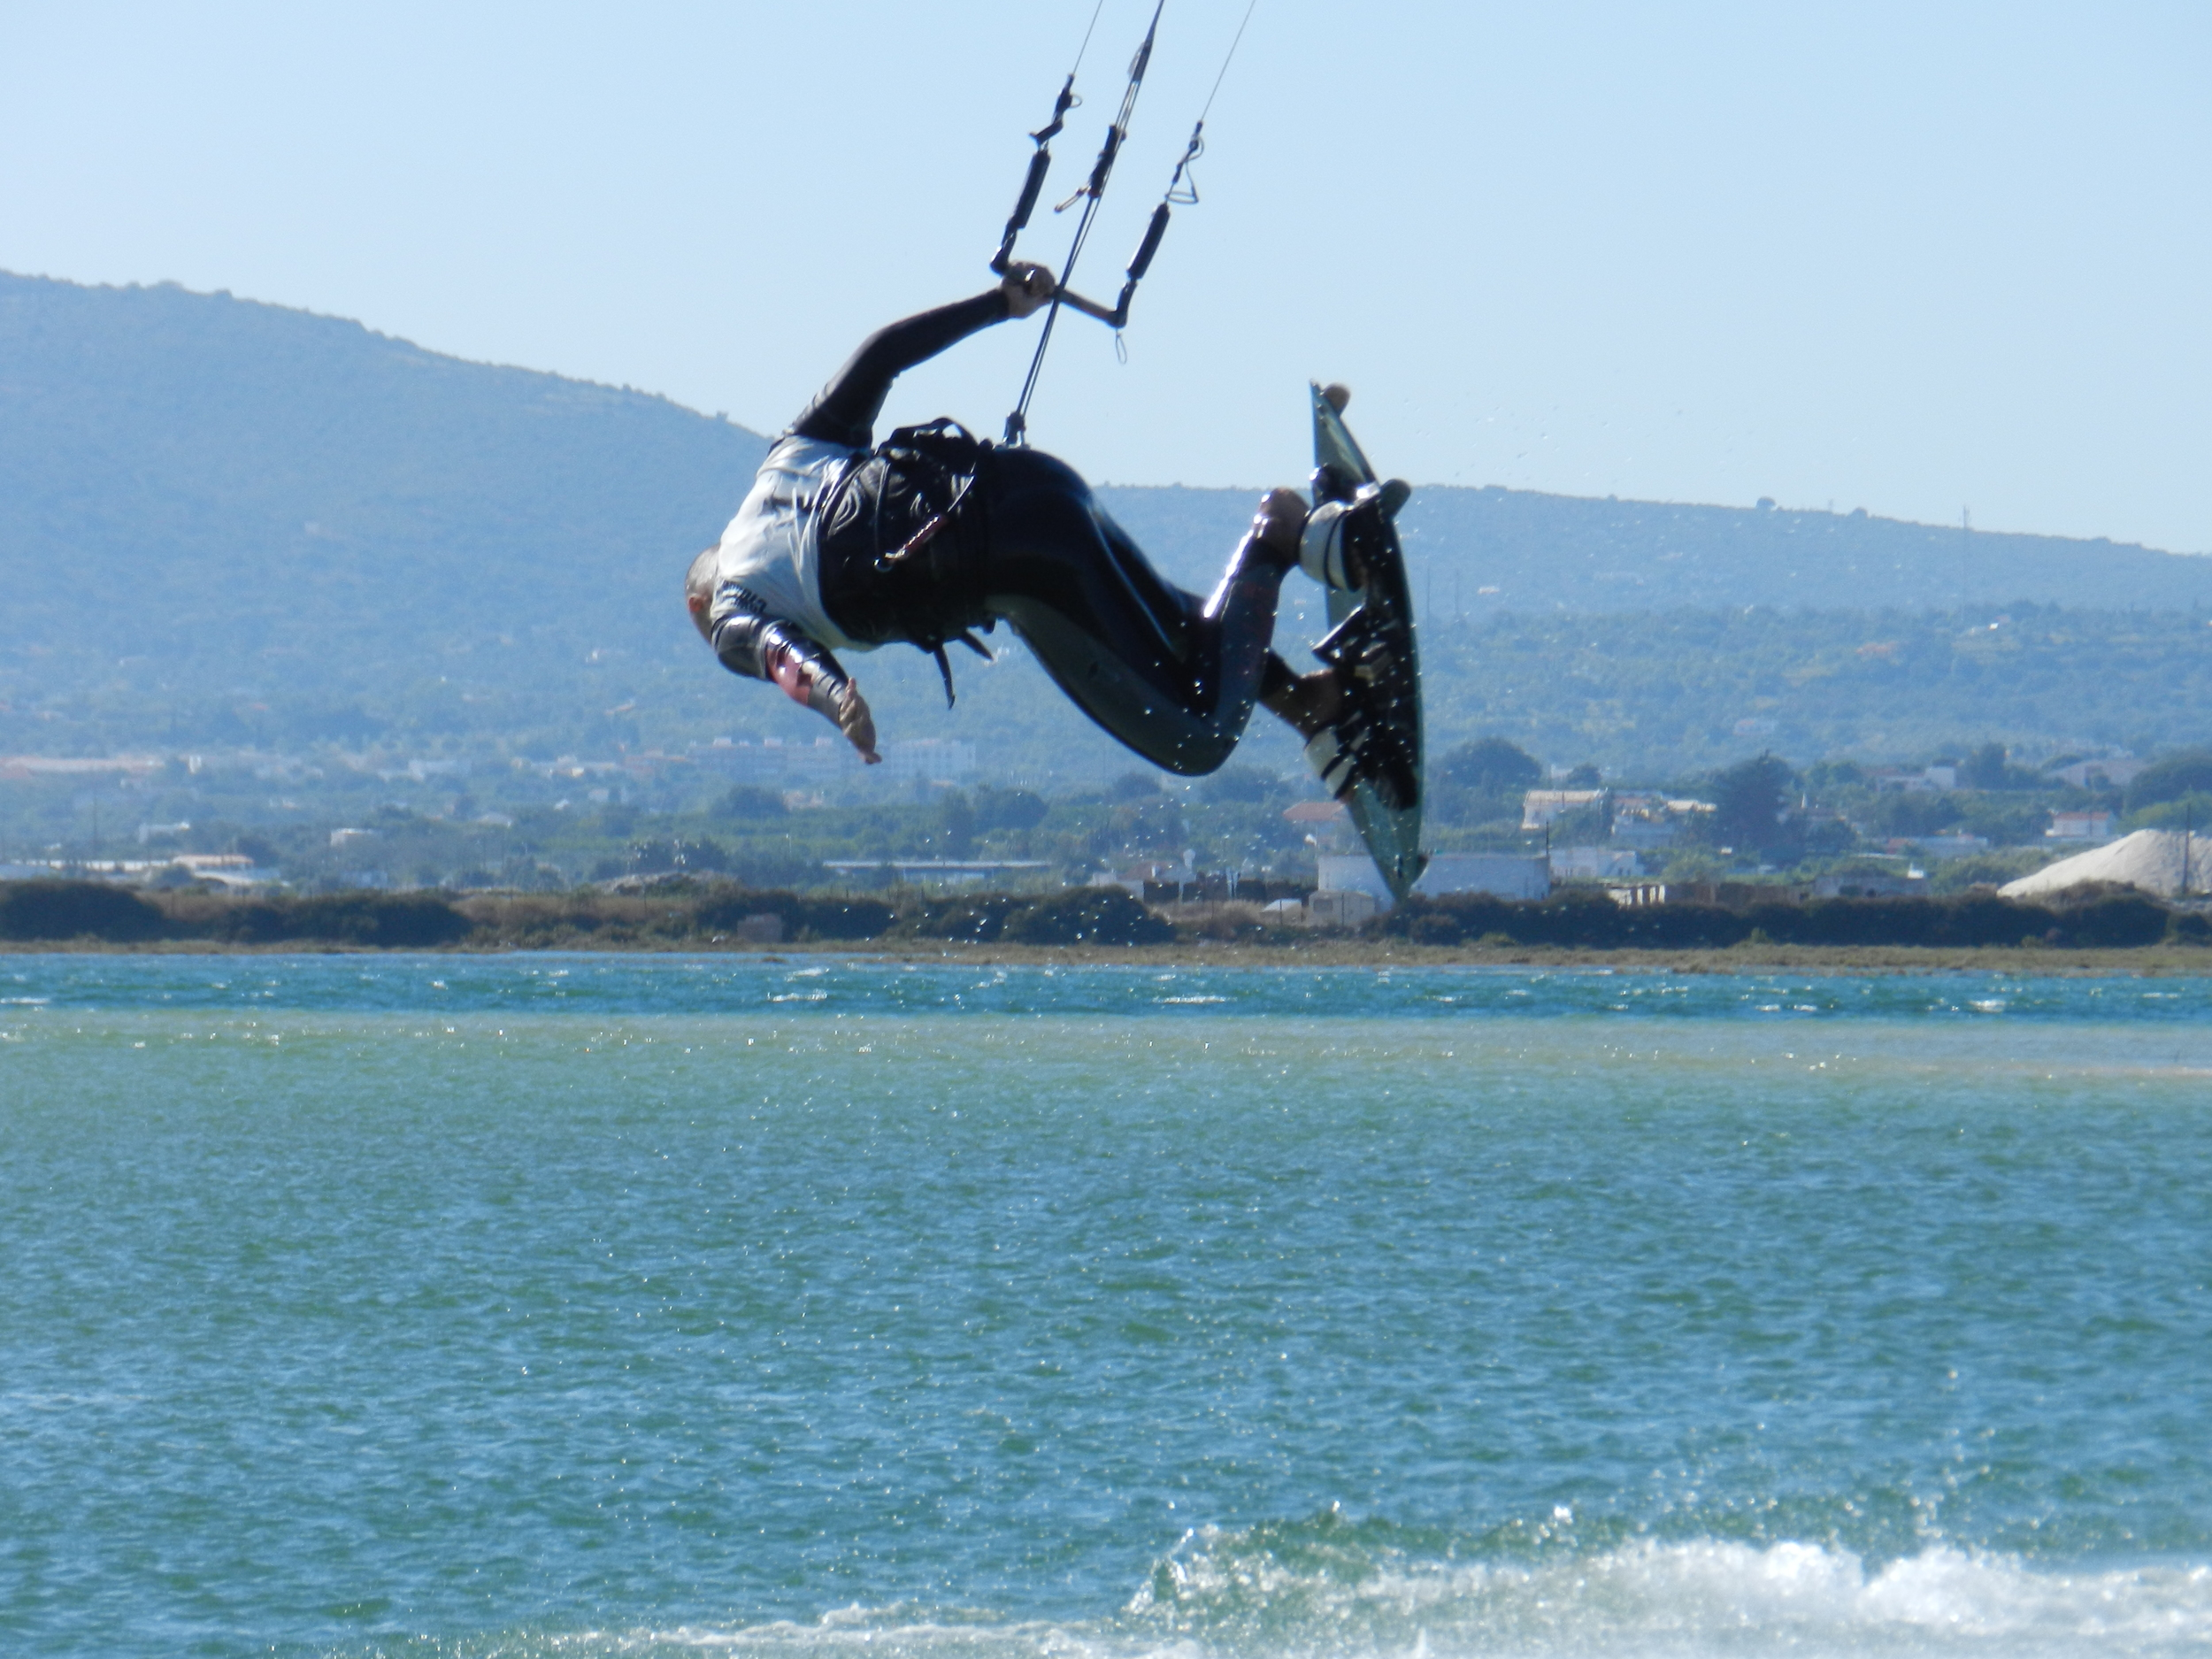 The flat water at Fuseta is a great place to Kitesurf